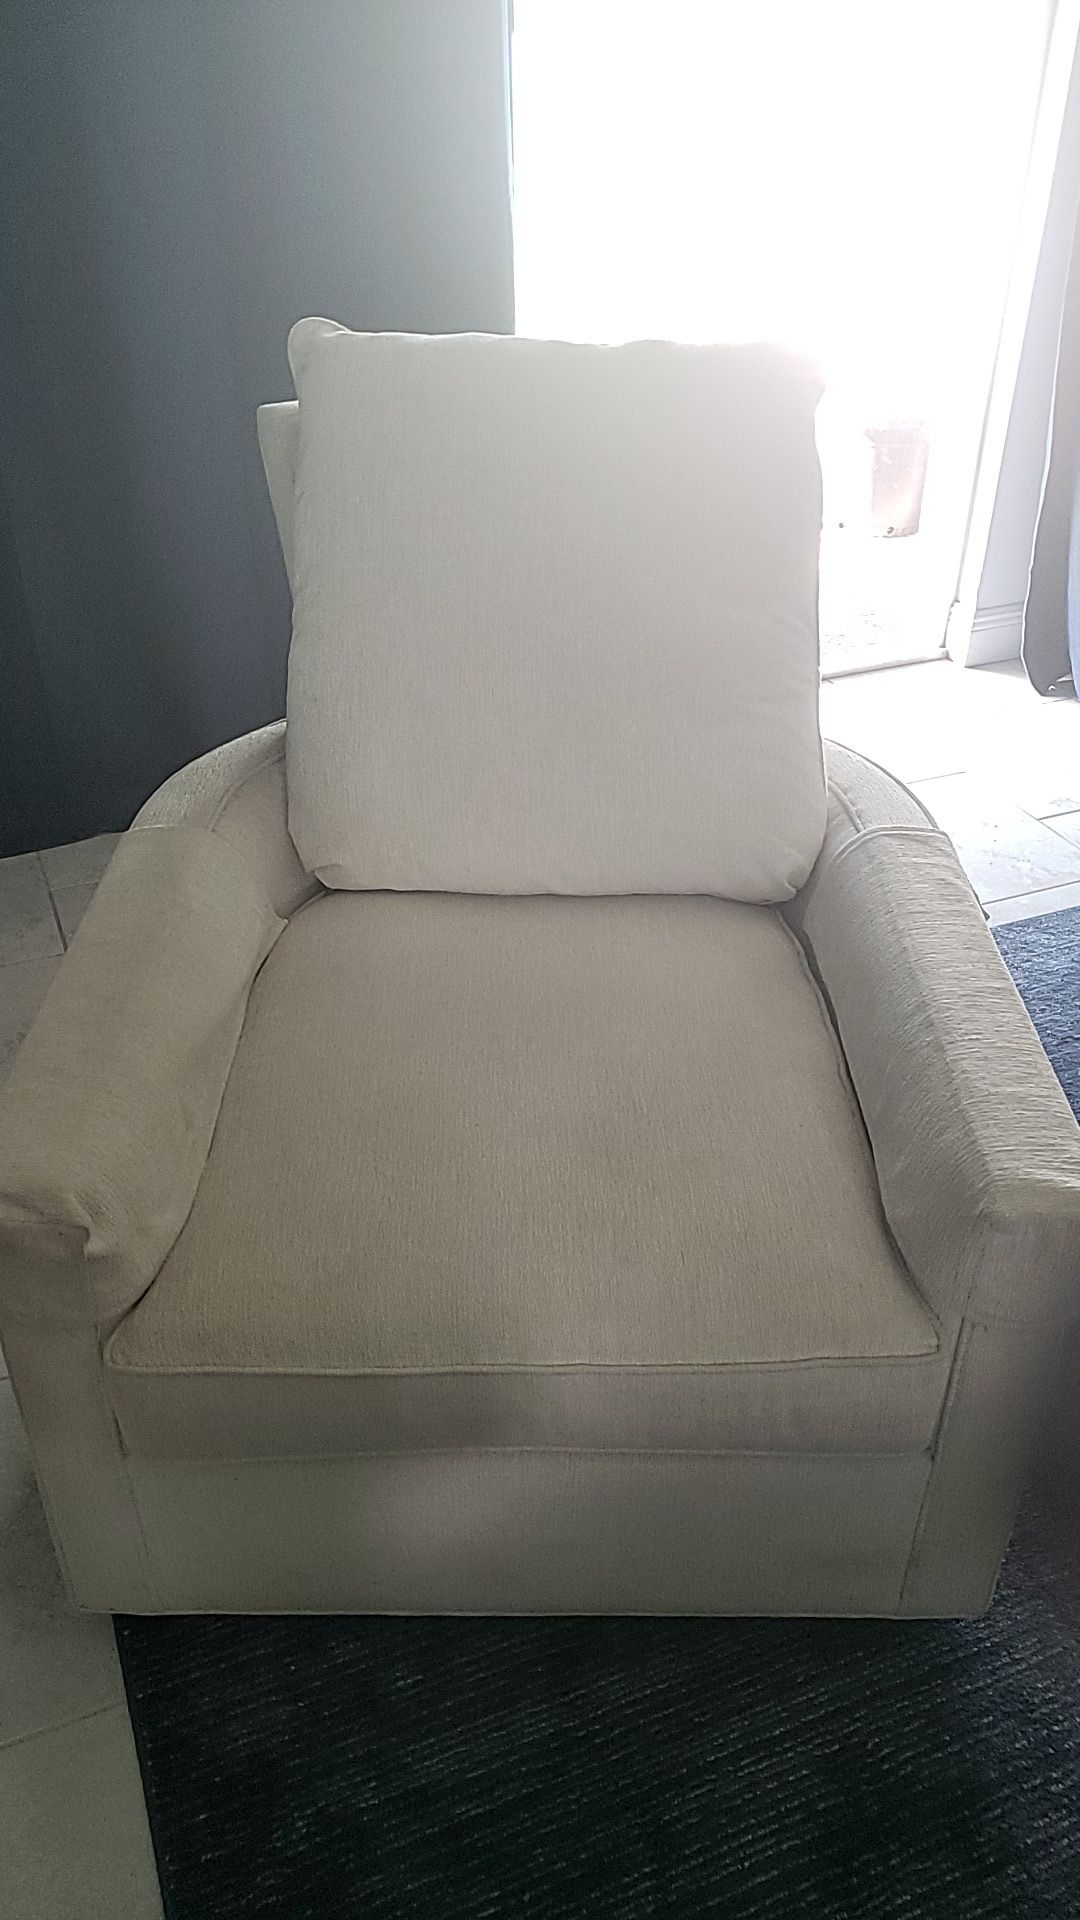 Big living room chair with leg rest